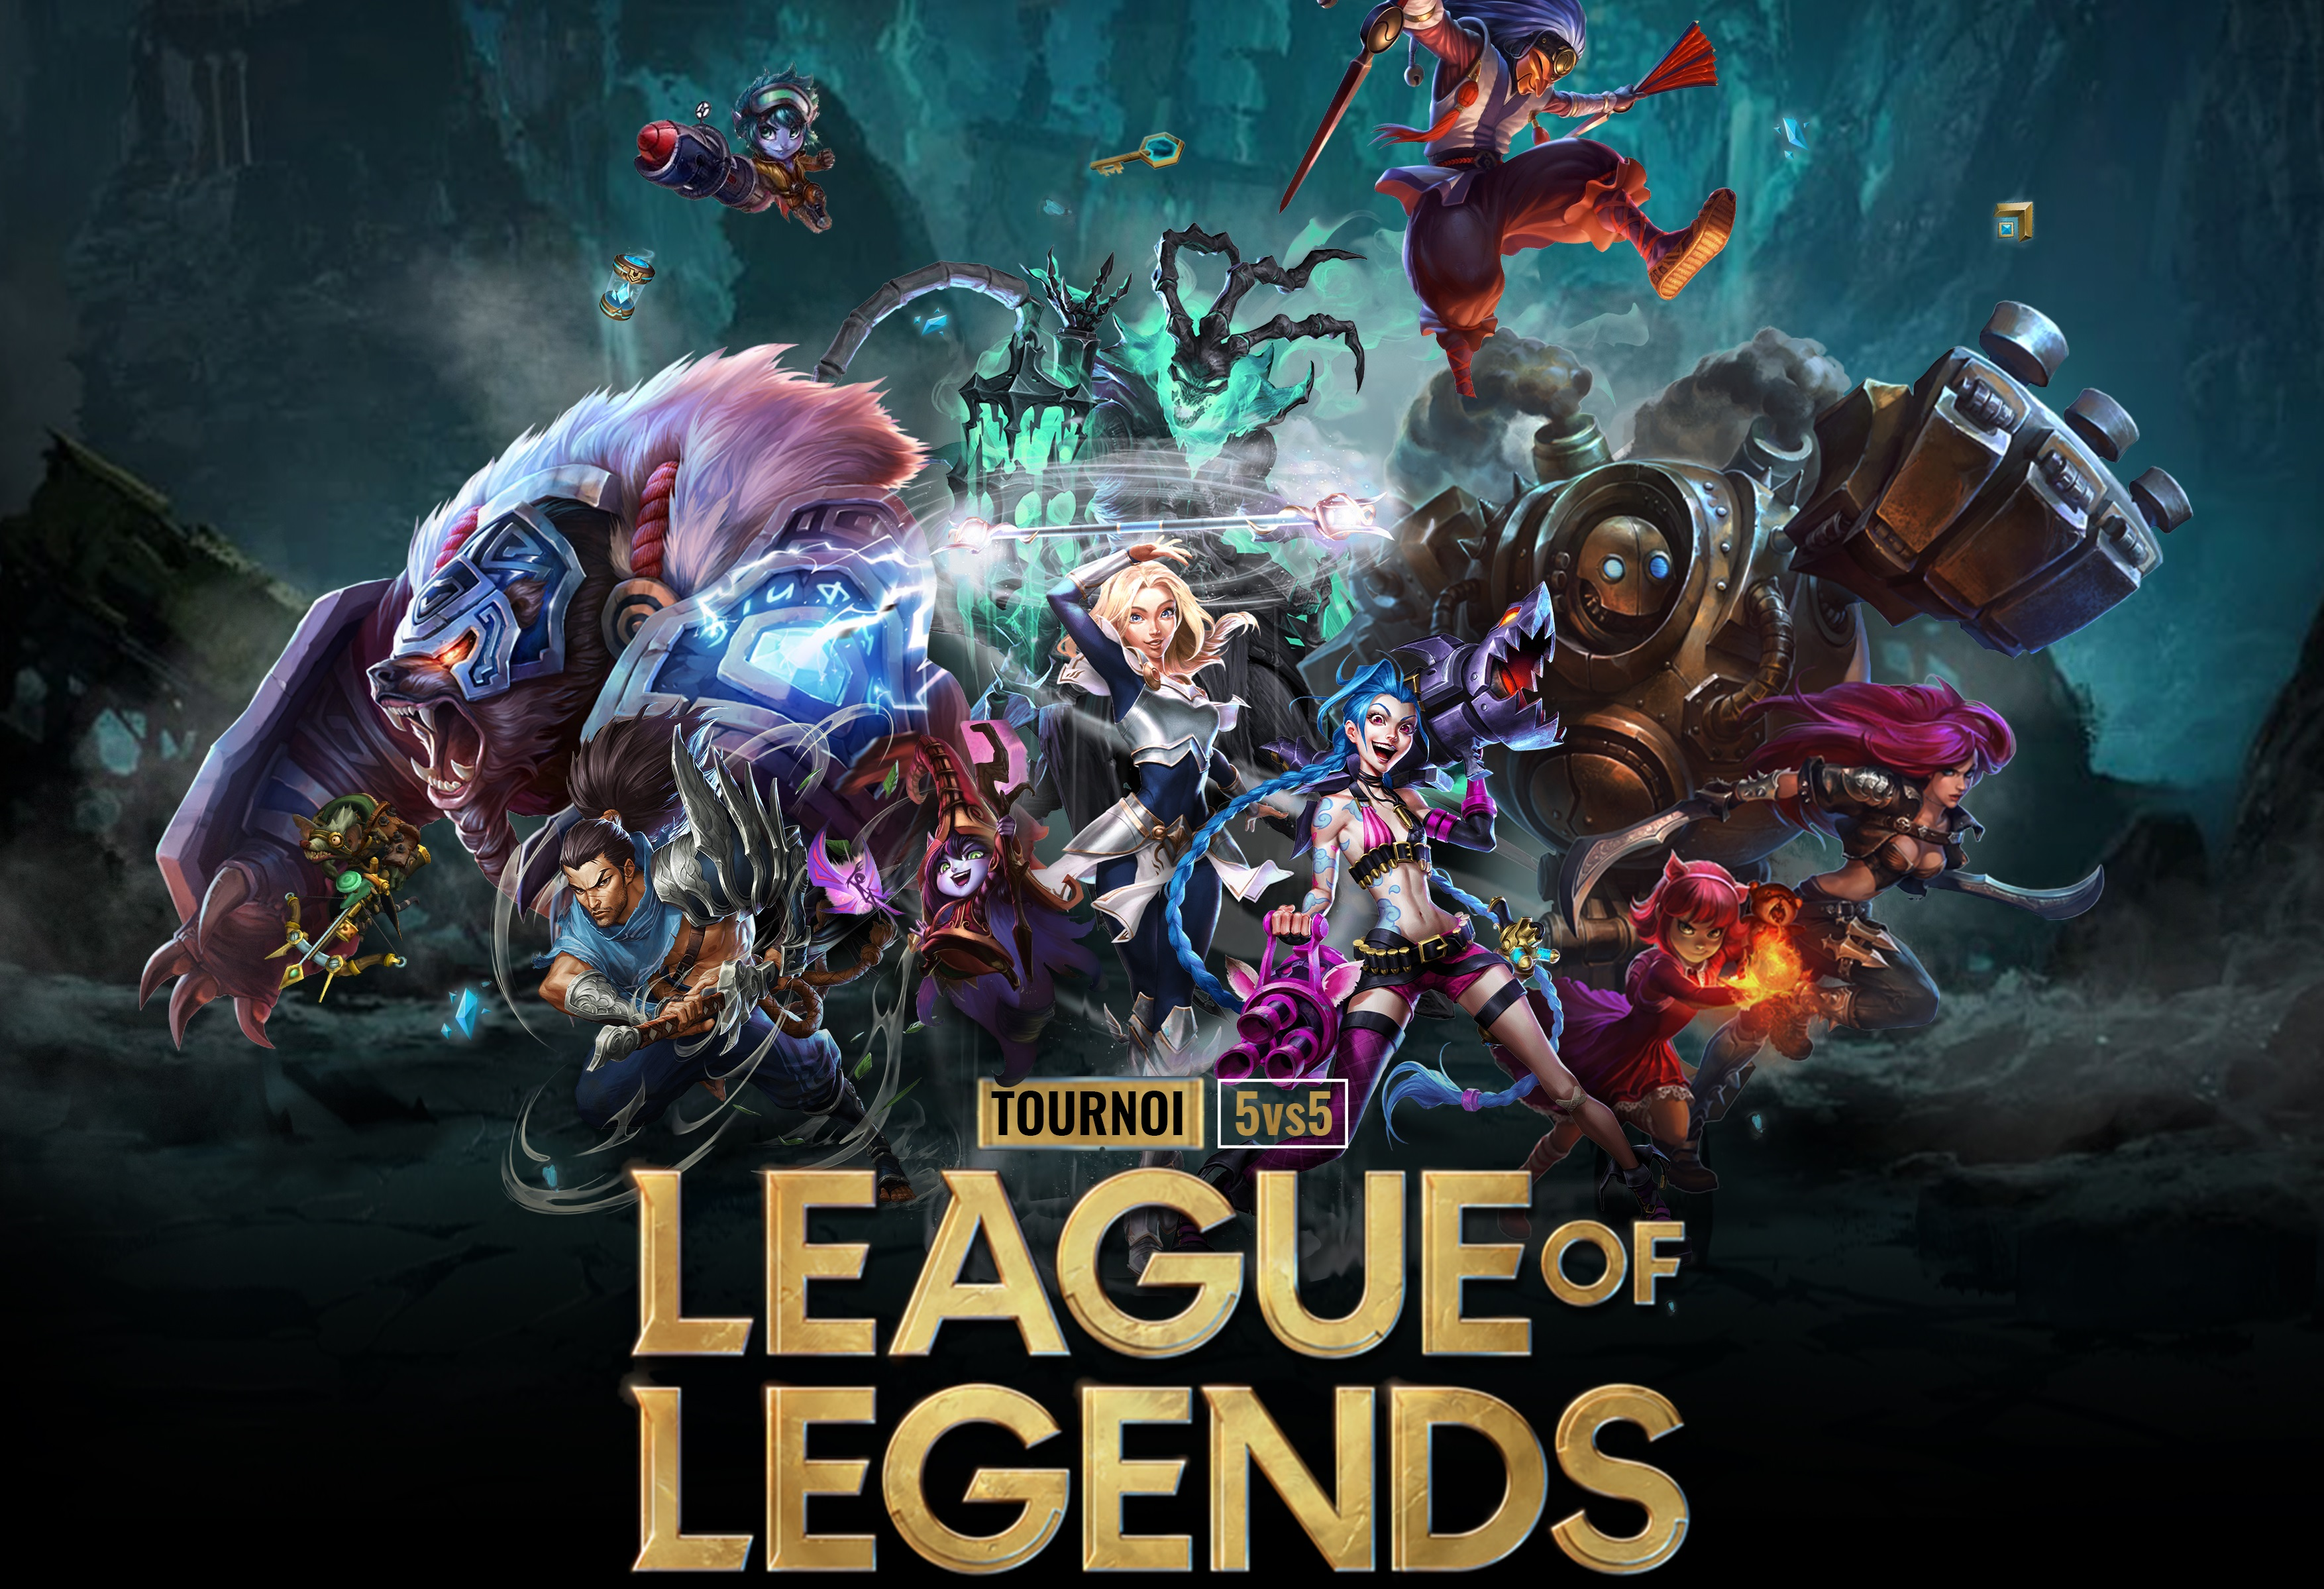 BIG GAMING CHALLENGE LEAGUE OF LEGEND